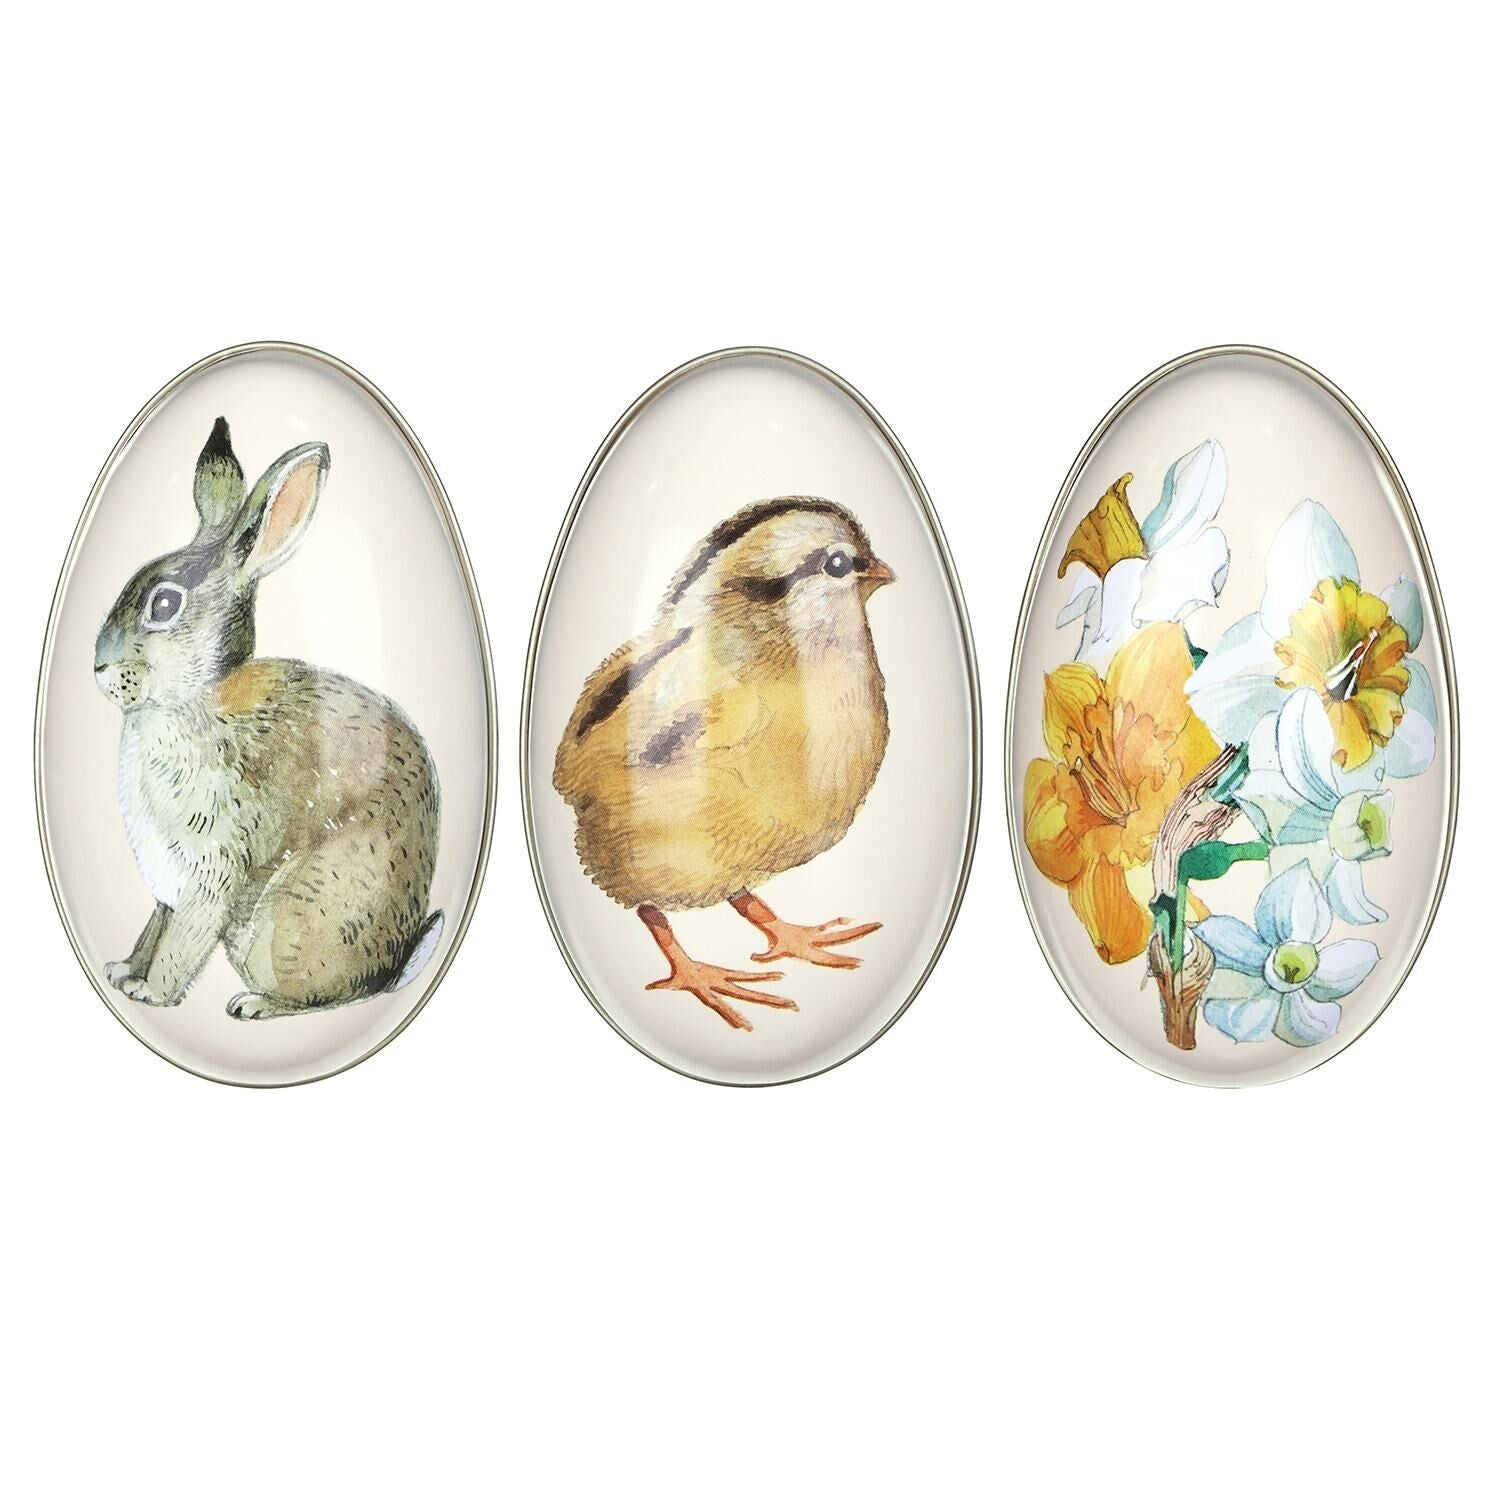 Emma Bridgewater Tin Egg - Flowers